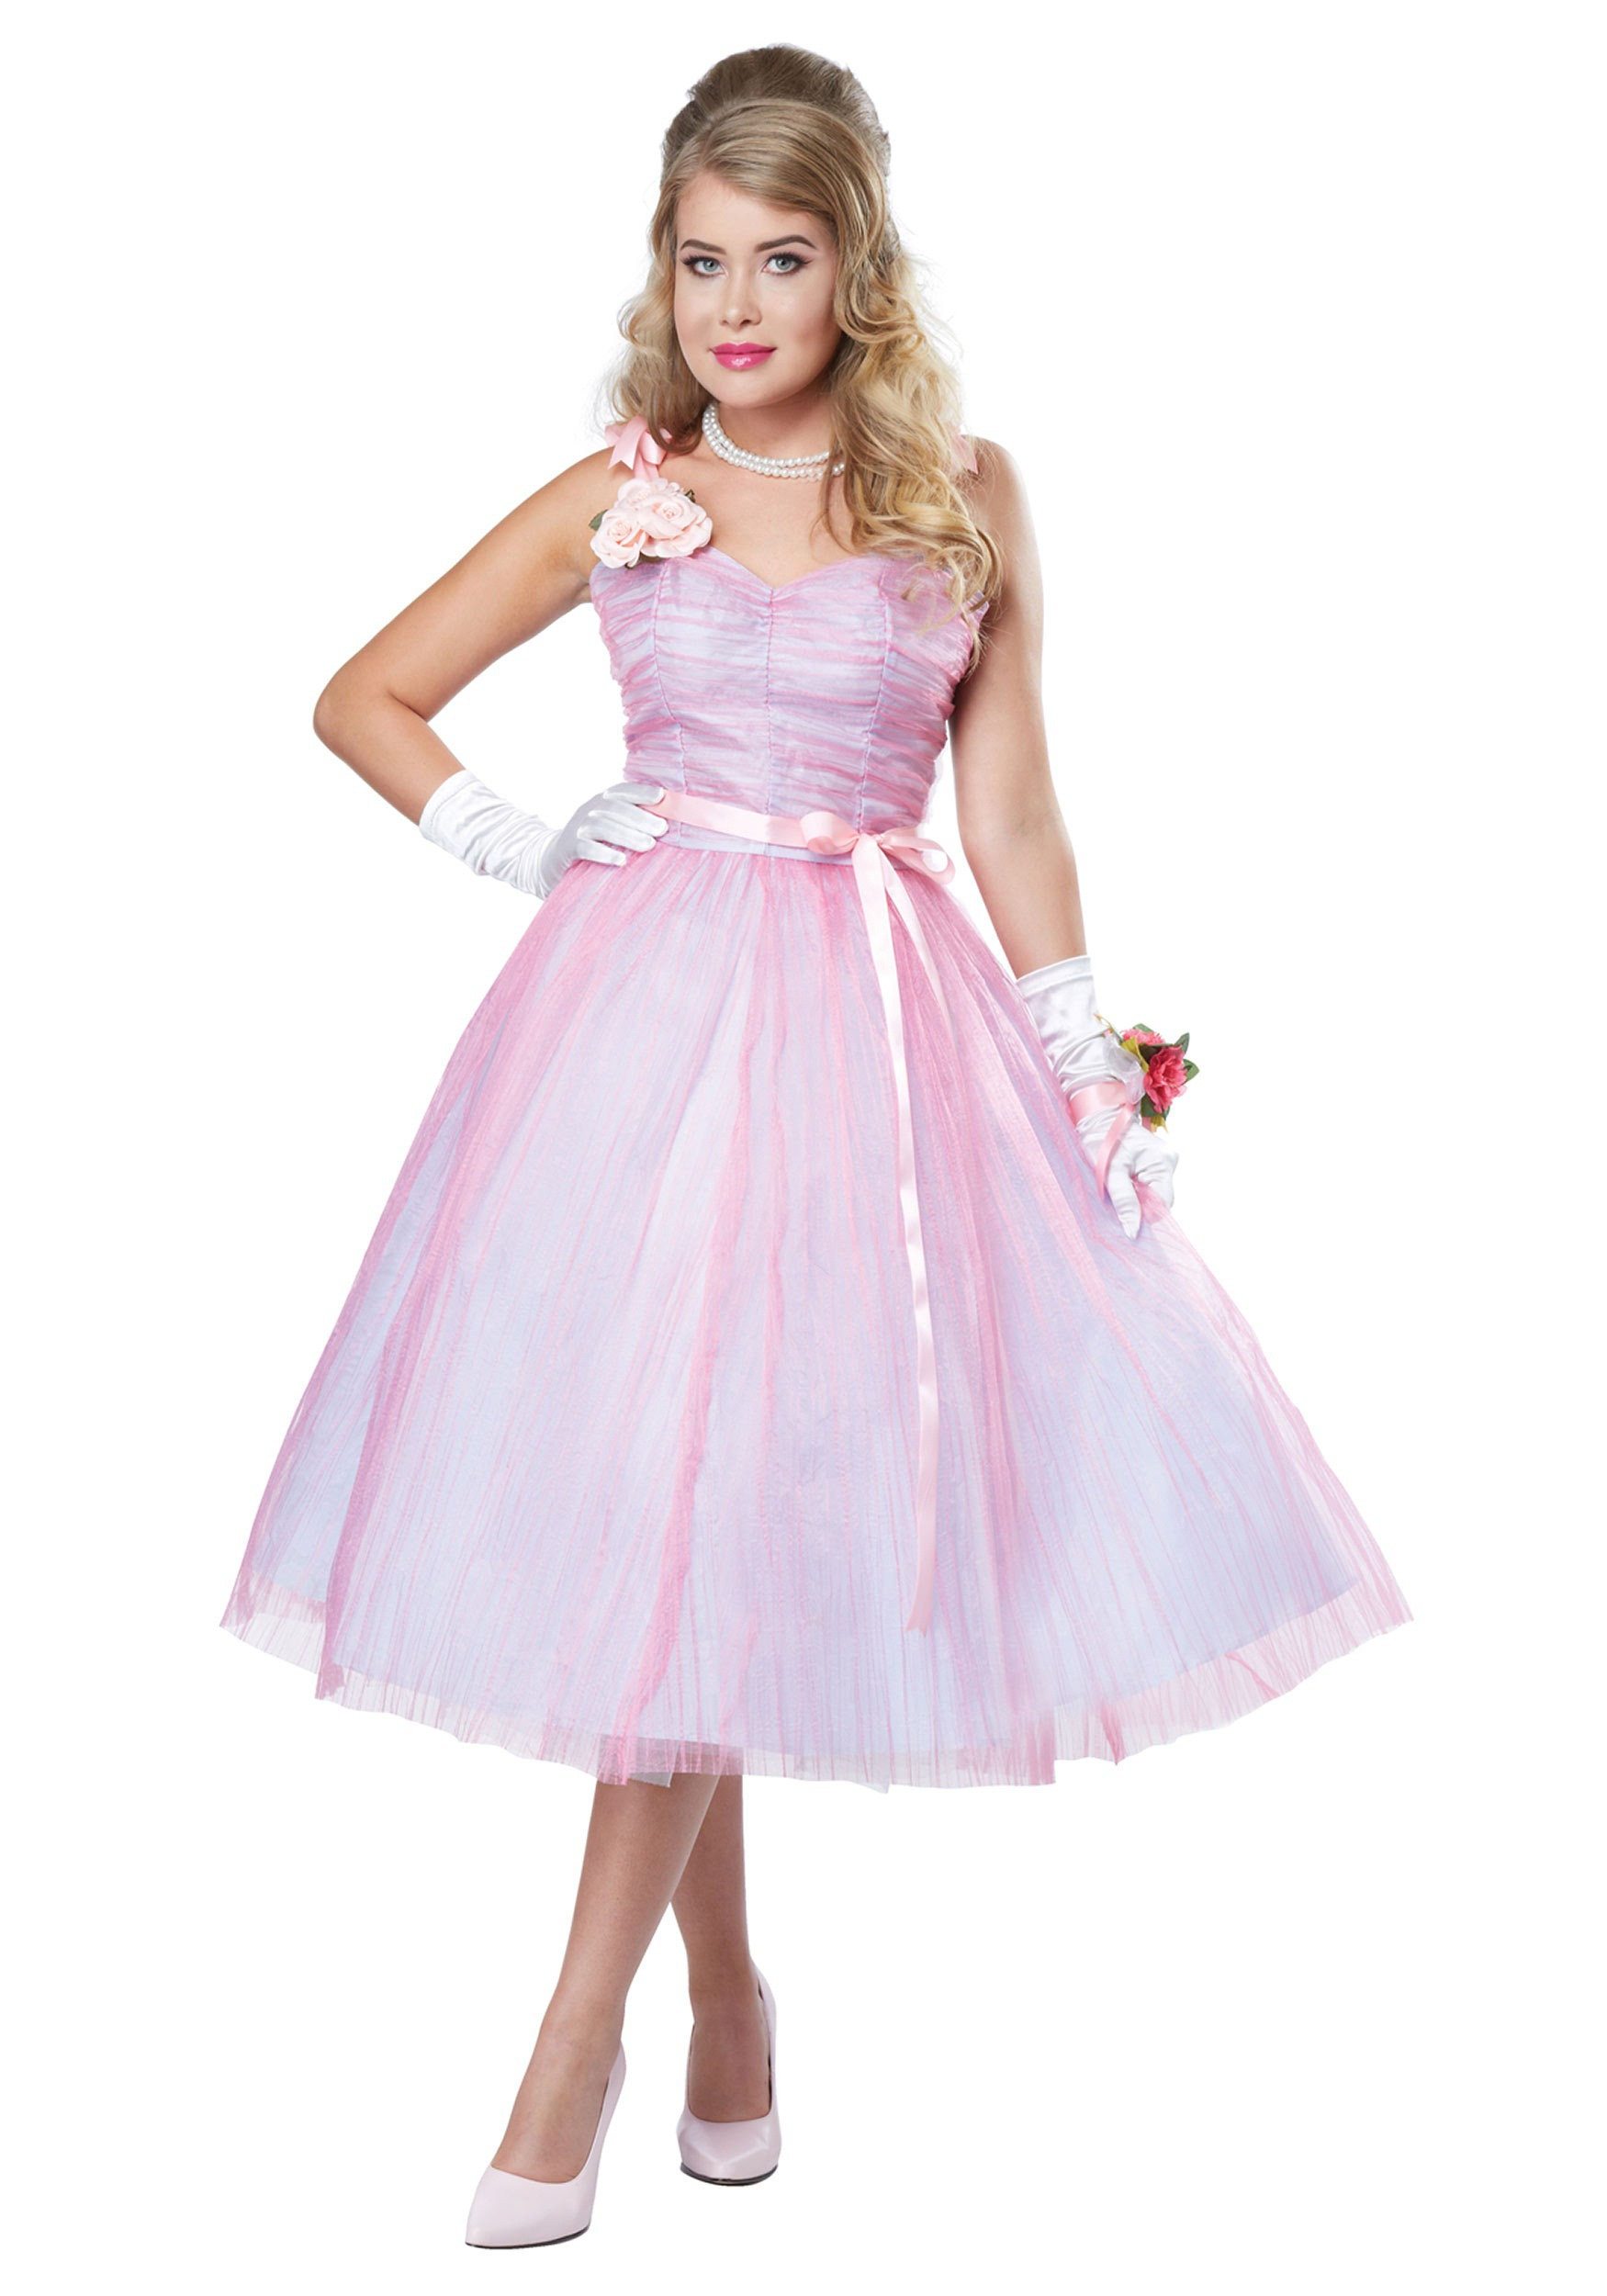 Adult Women's 50s Prom Beauty Costume